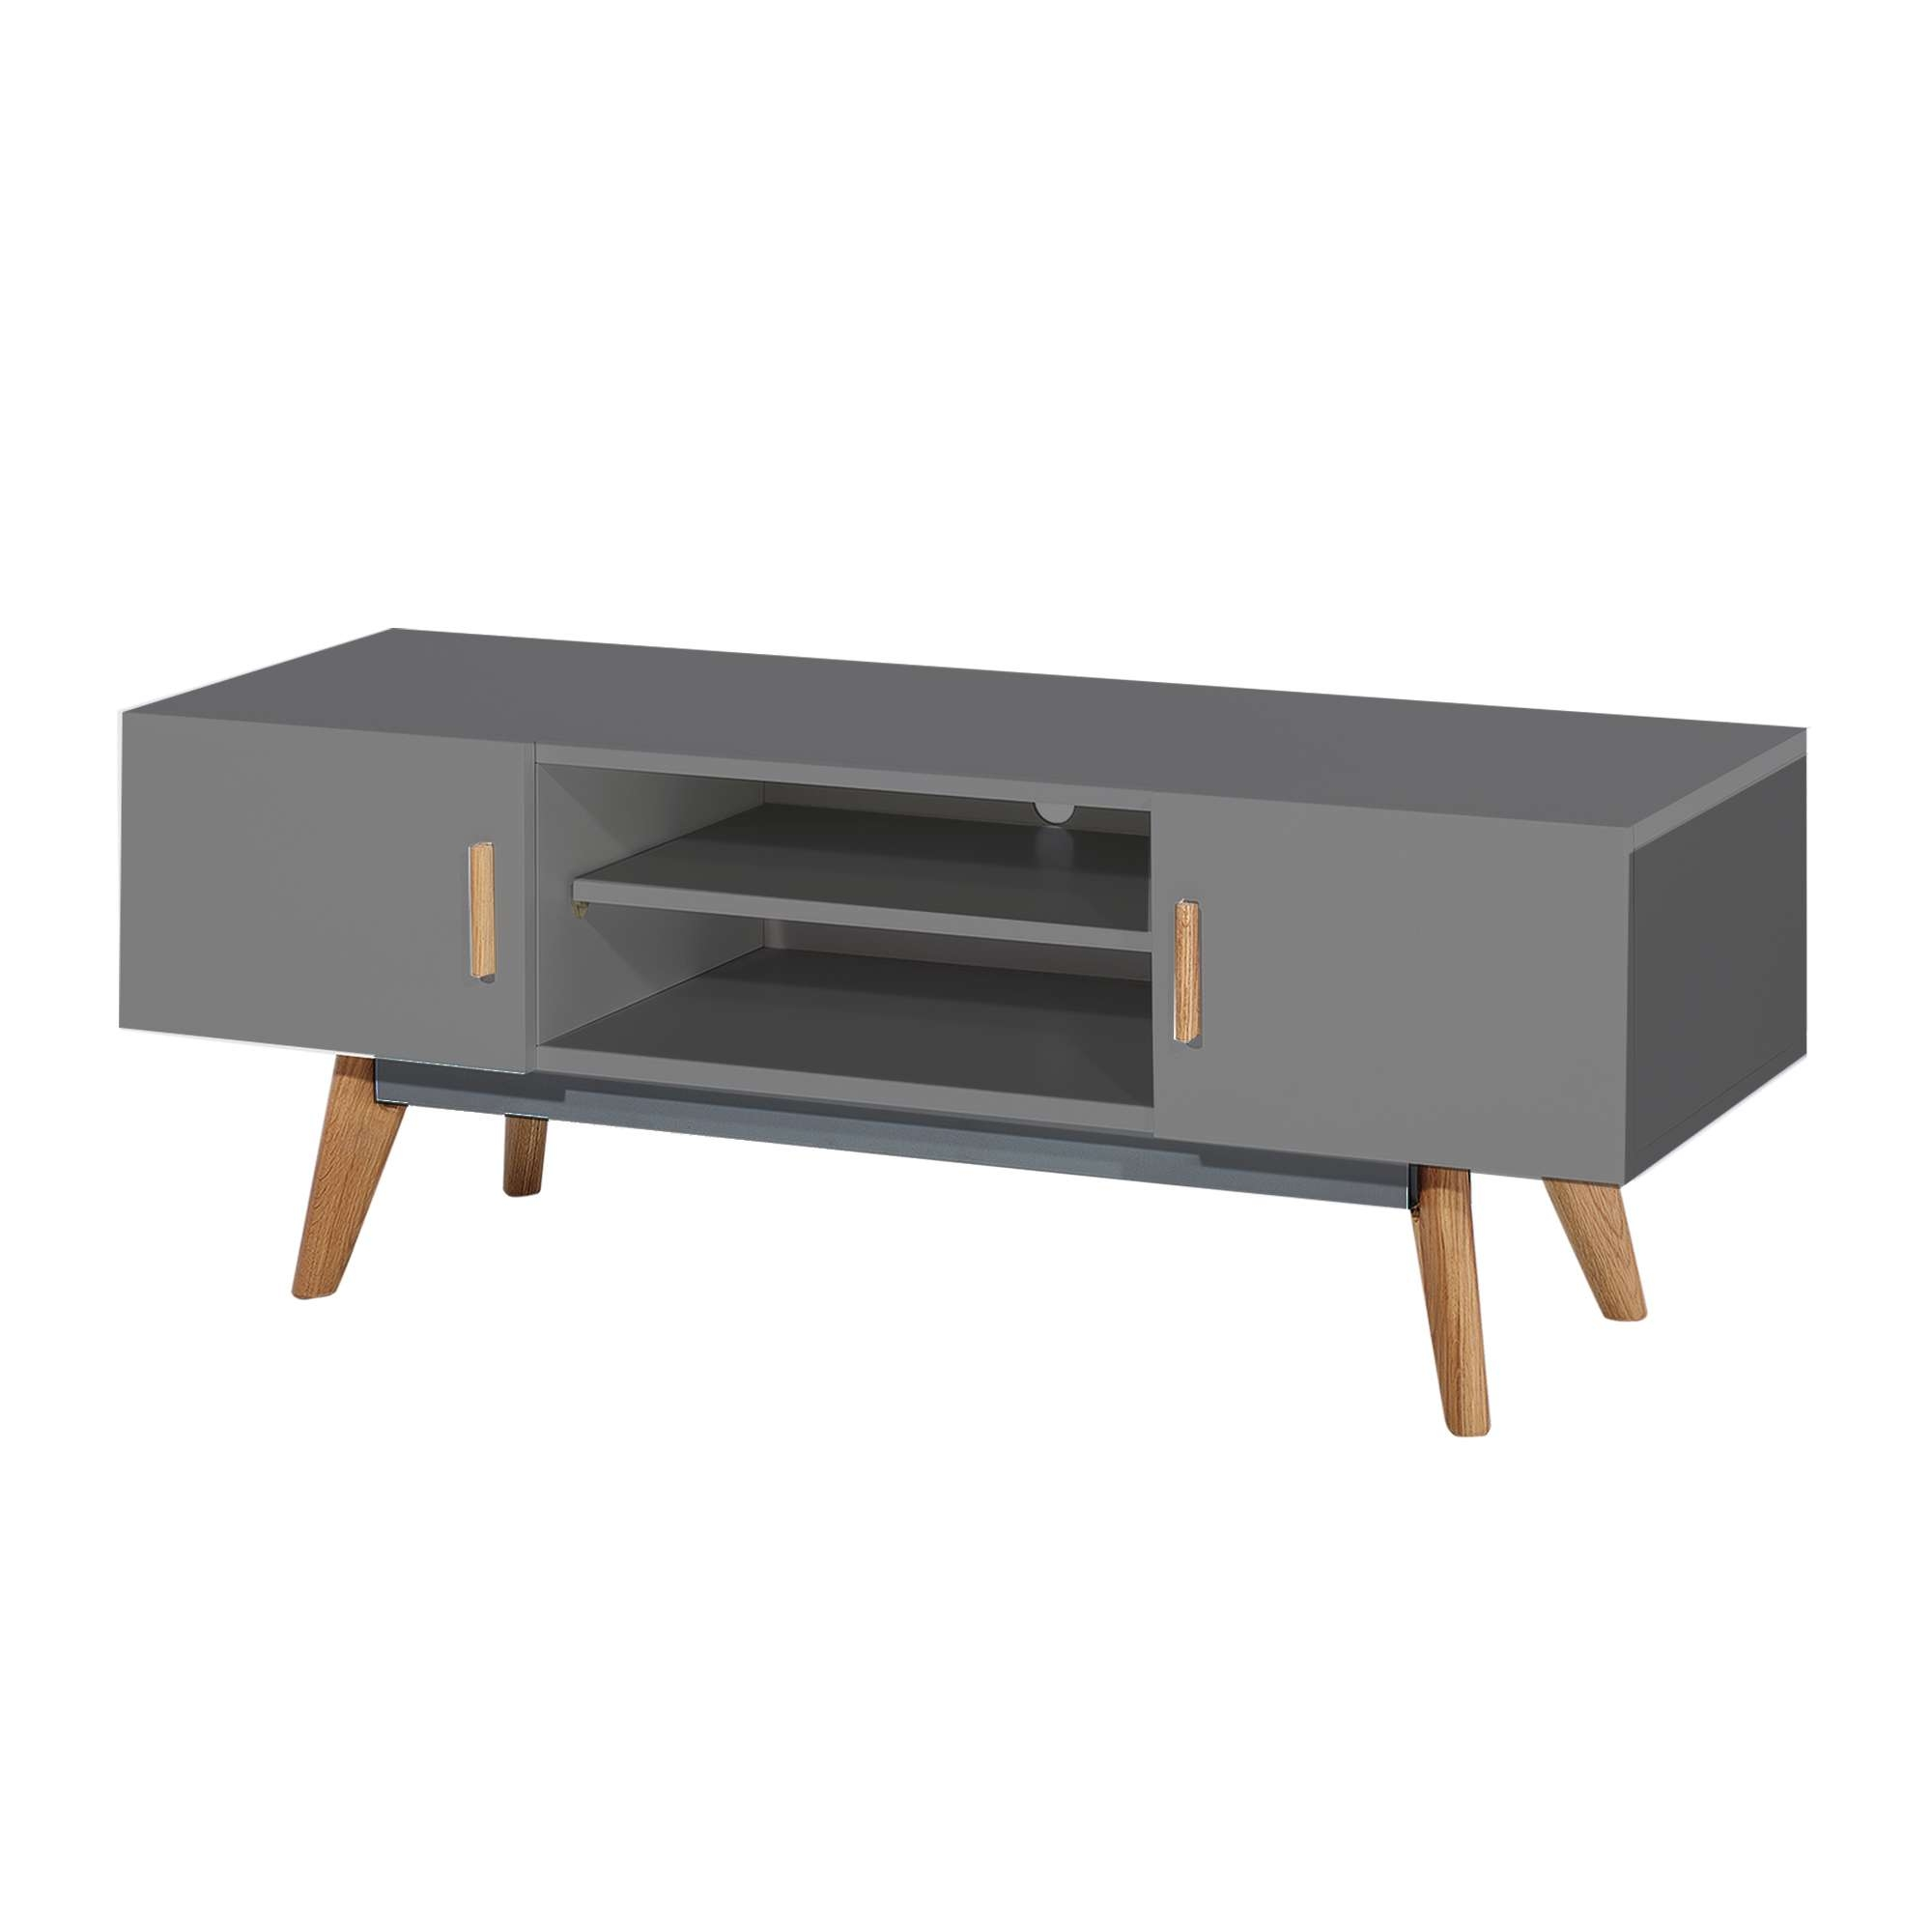 Stylish White Modern Tv Stand From Abreo Abreo Home Furniture In Scandinavian Tv Stands (View 8 of 15)